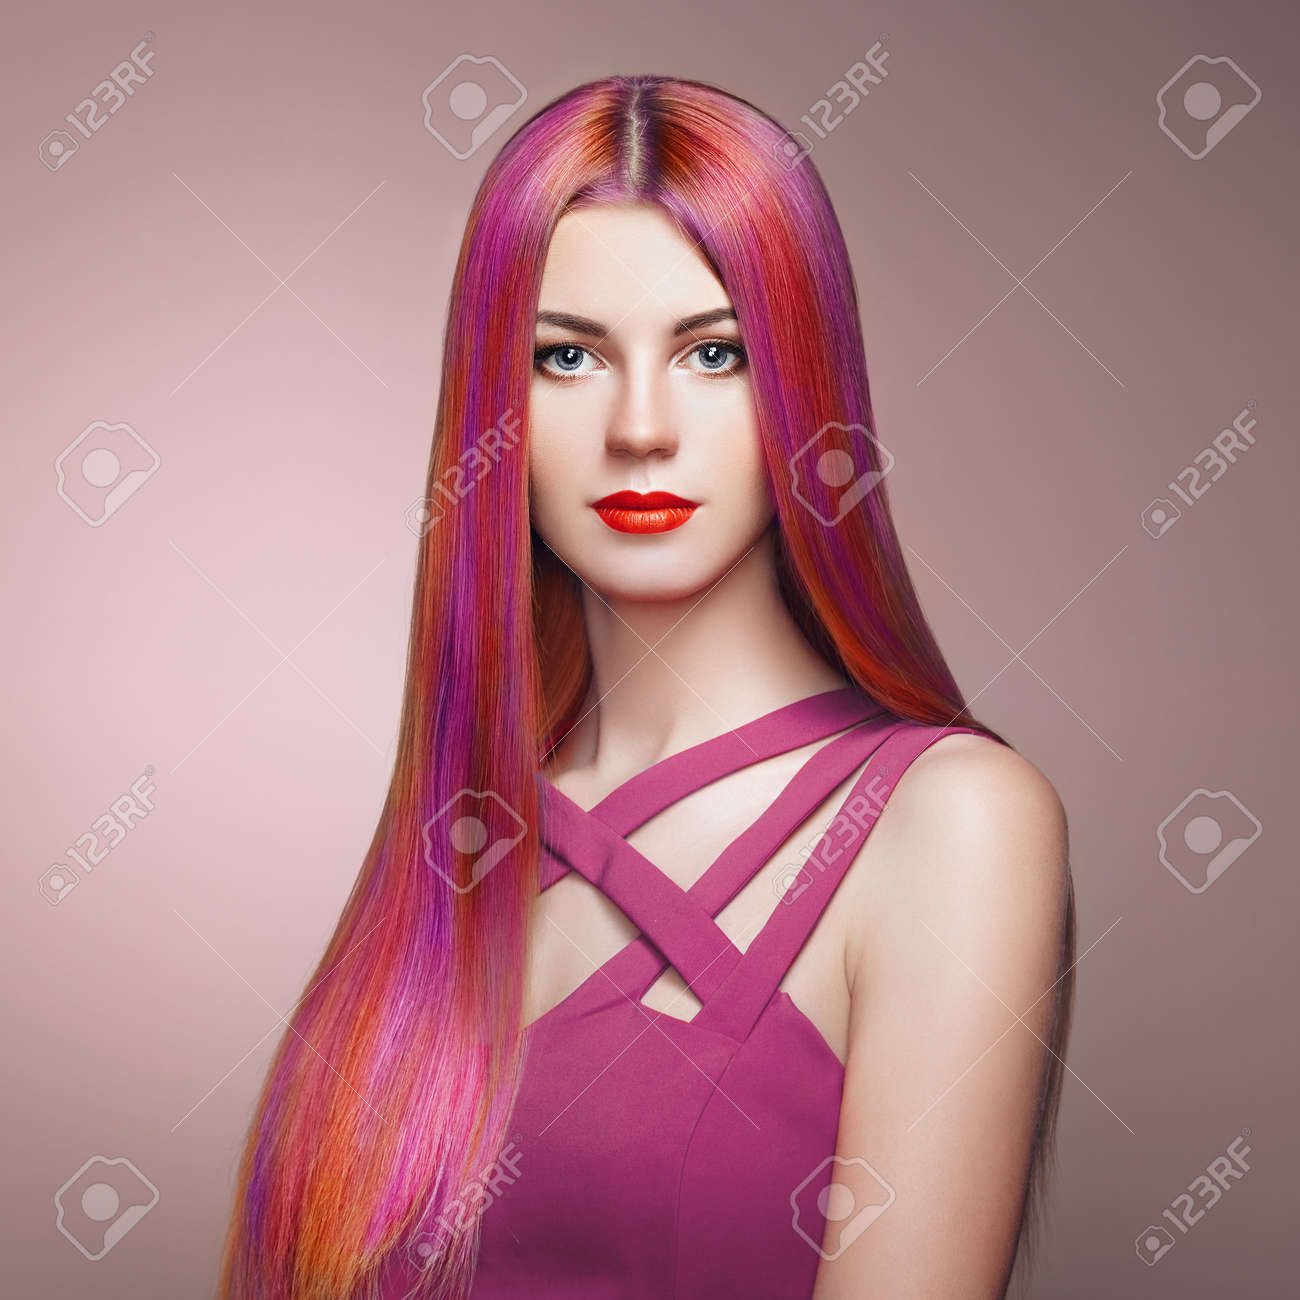 Beauty Fashion Model Girl with Colorful Dyed Hair. Girl with perfect Makeup and Hairstyle. Model with perfect Healthy Dyed Hair. Rainbow Hairstyles - 94919552